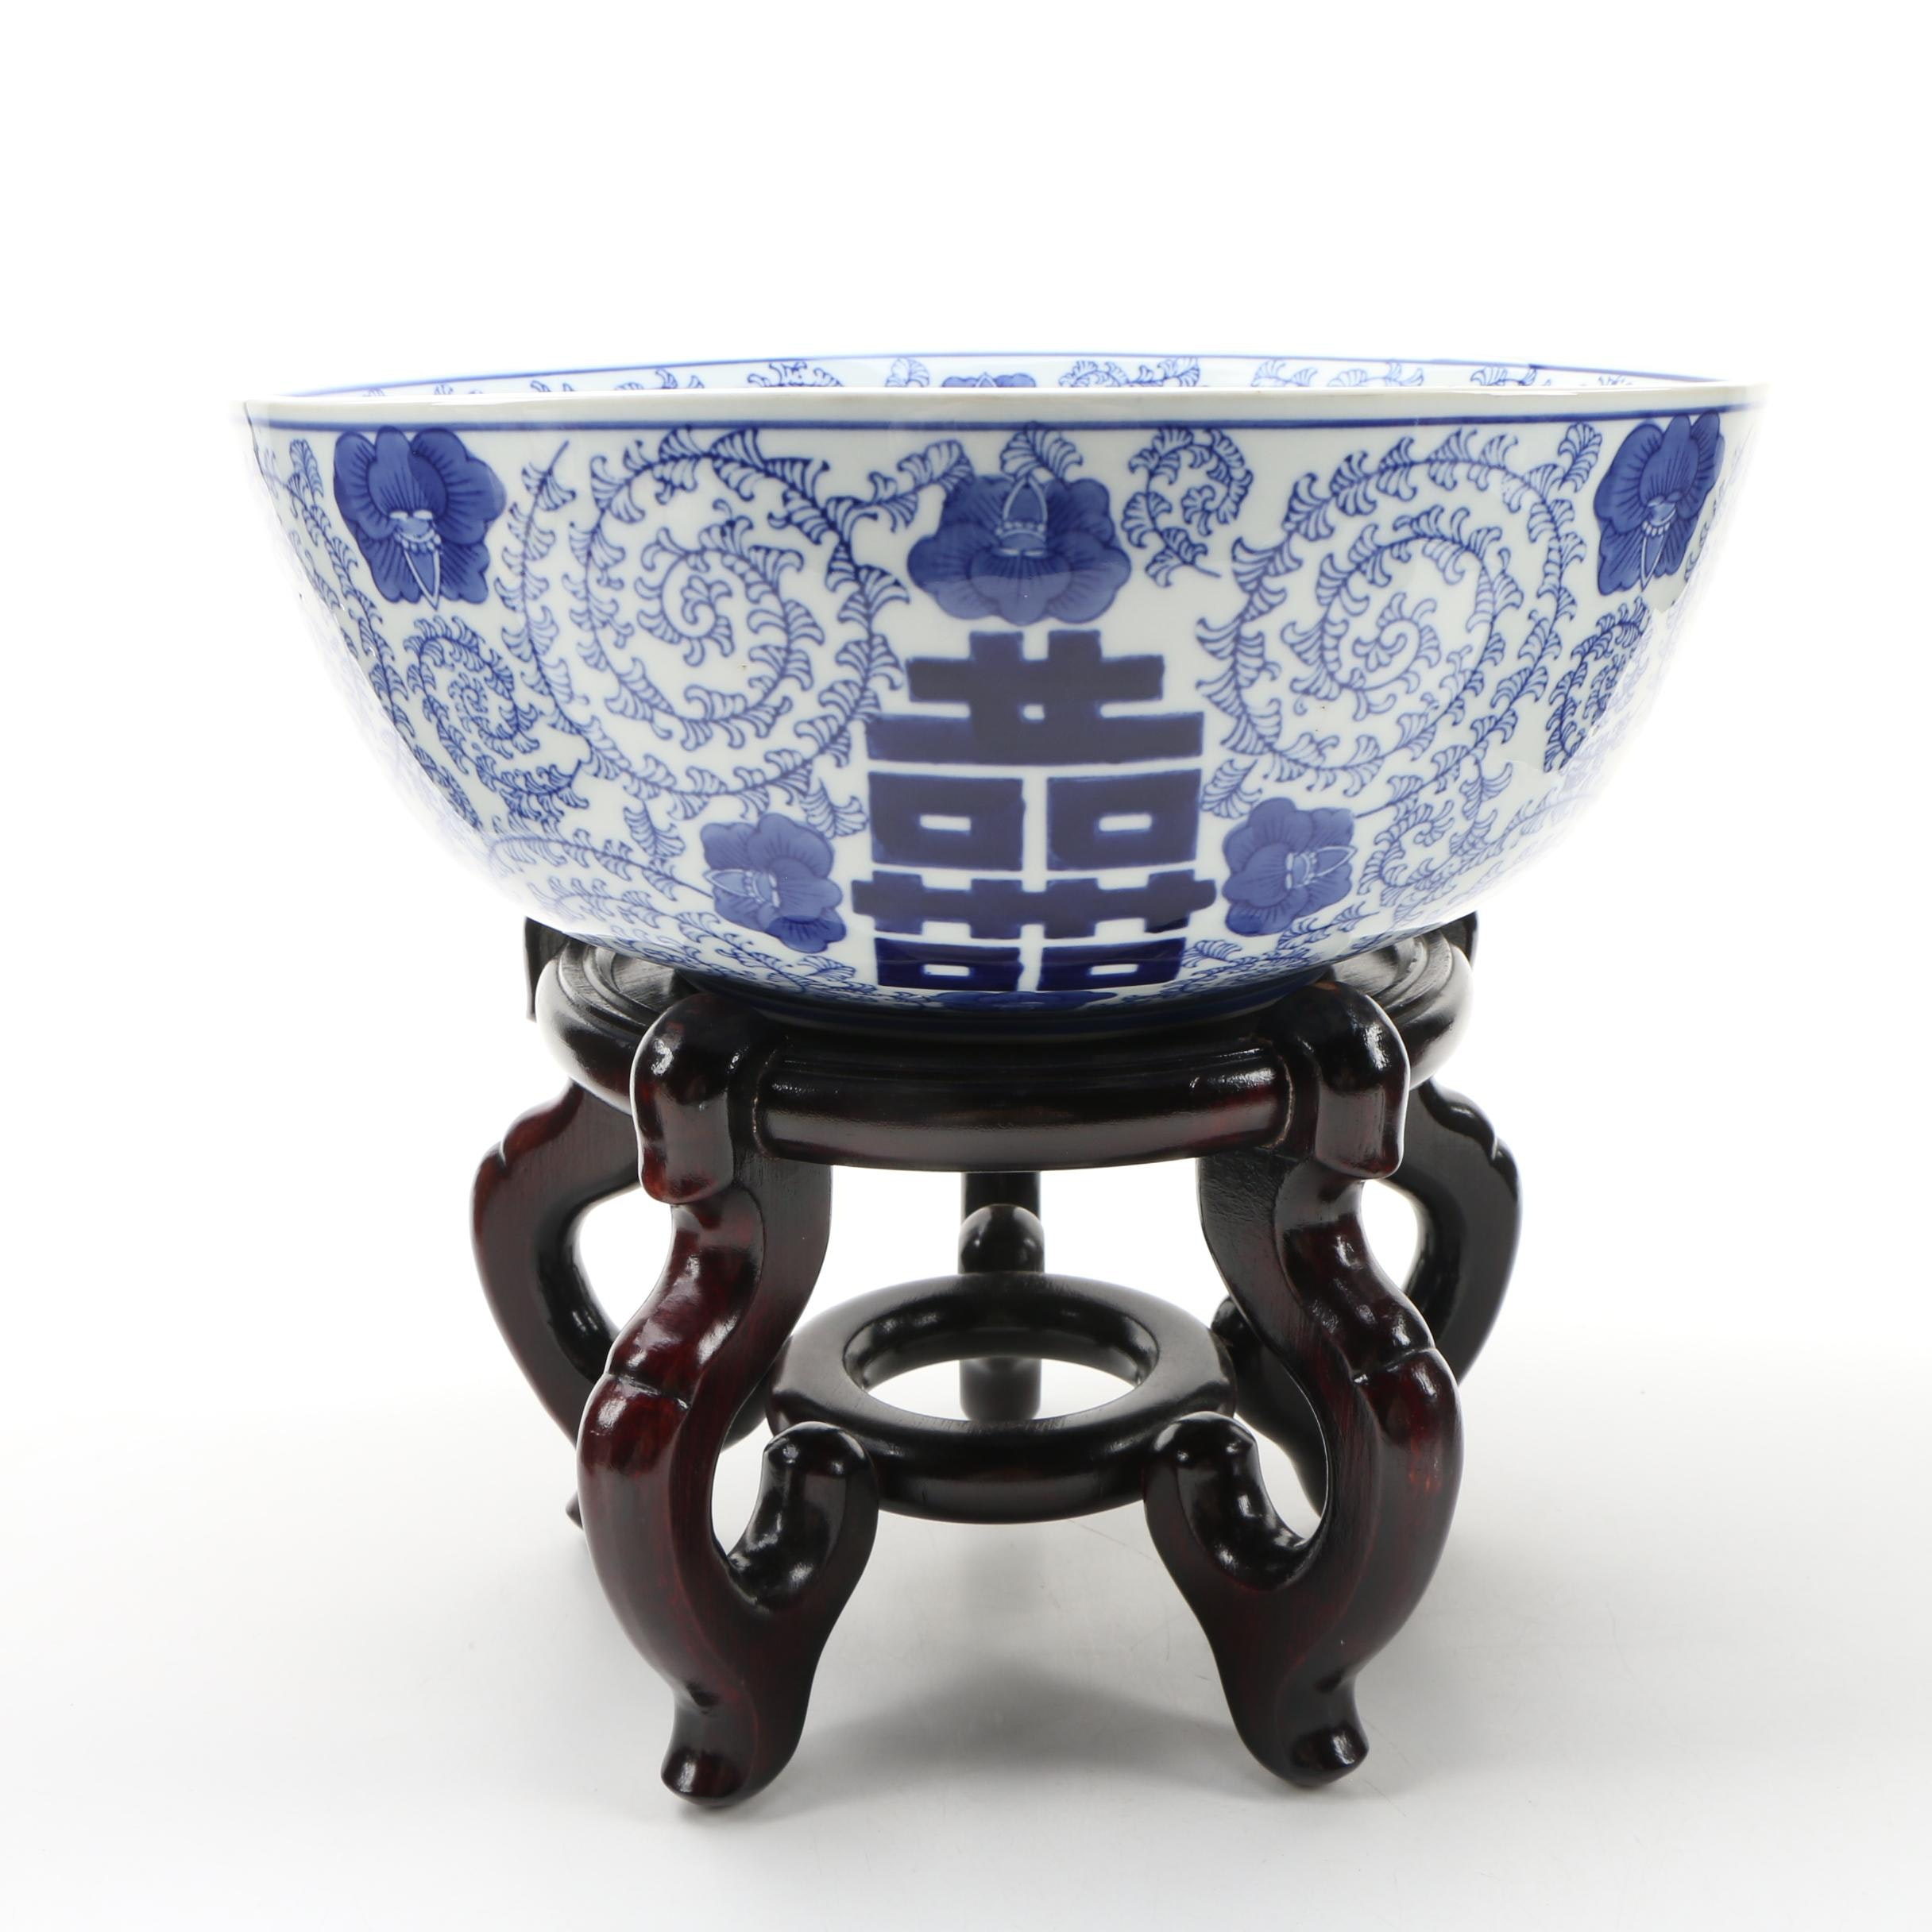 Chinese Blue and White Ceramic Double Happiness Bowl with Stand